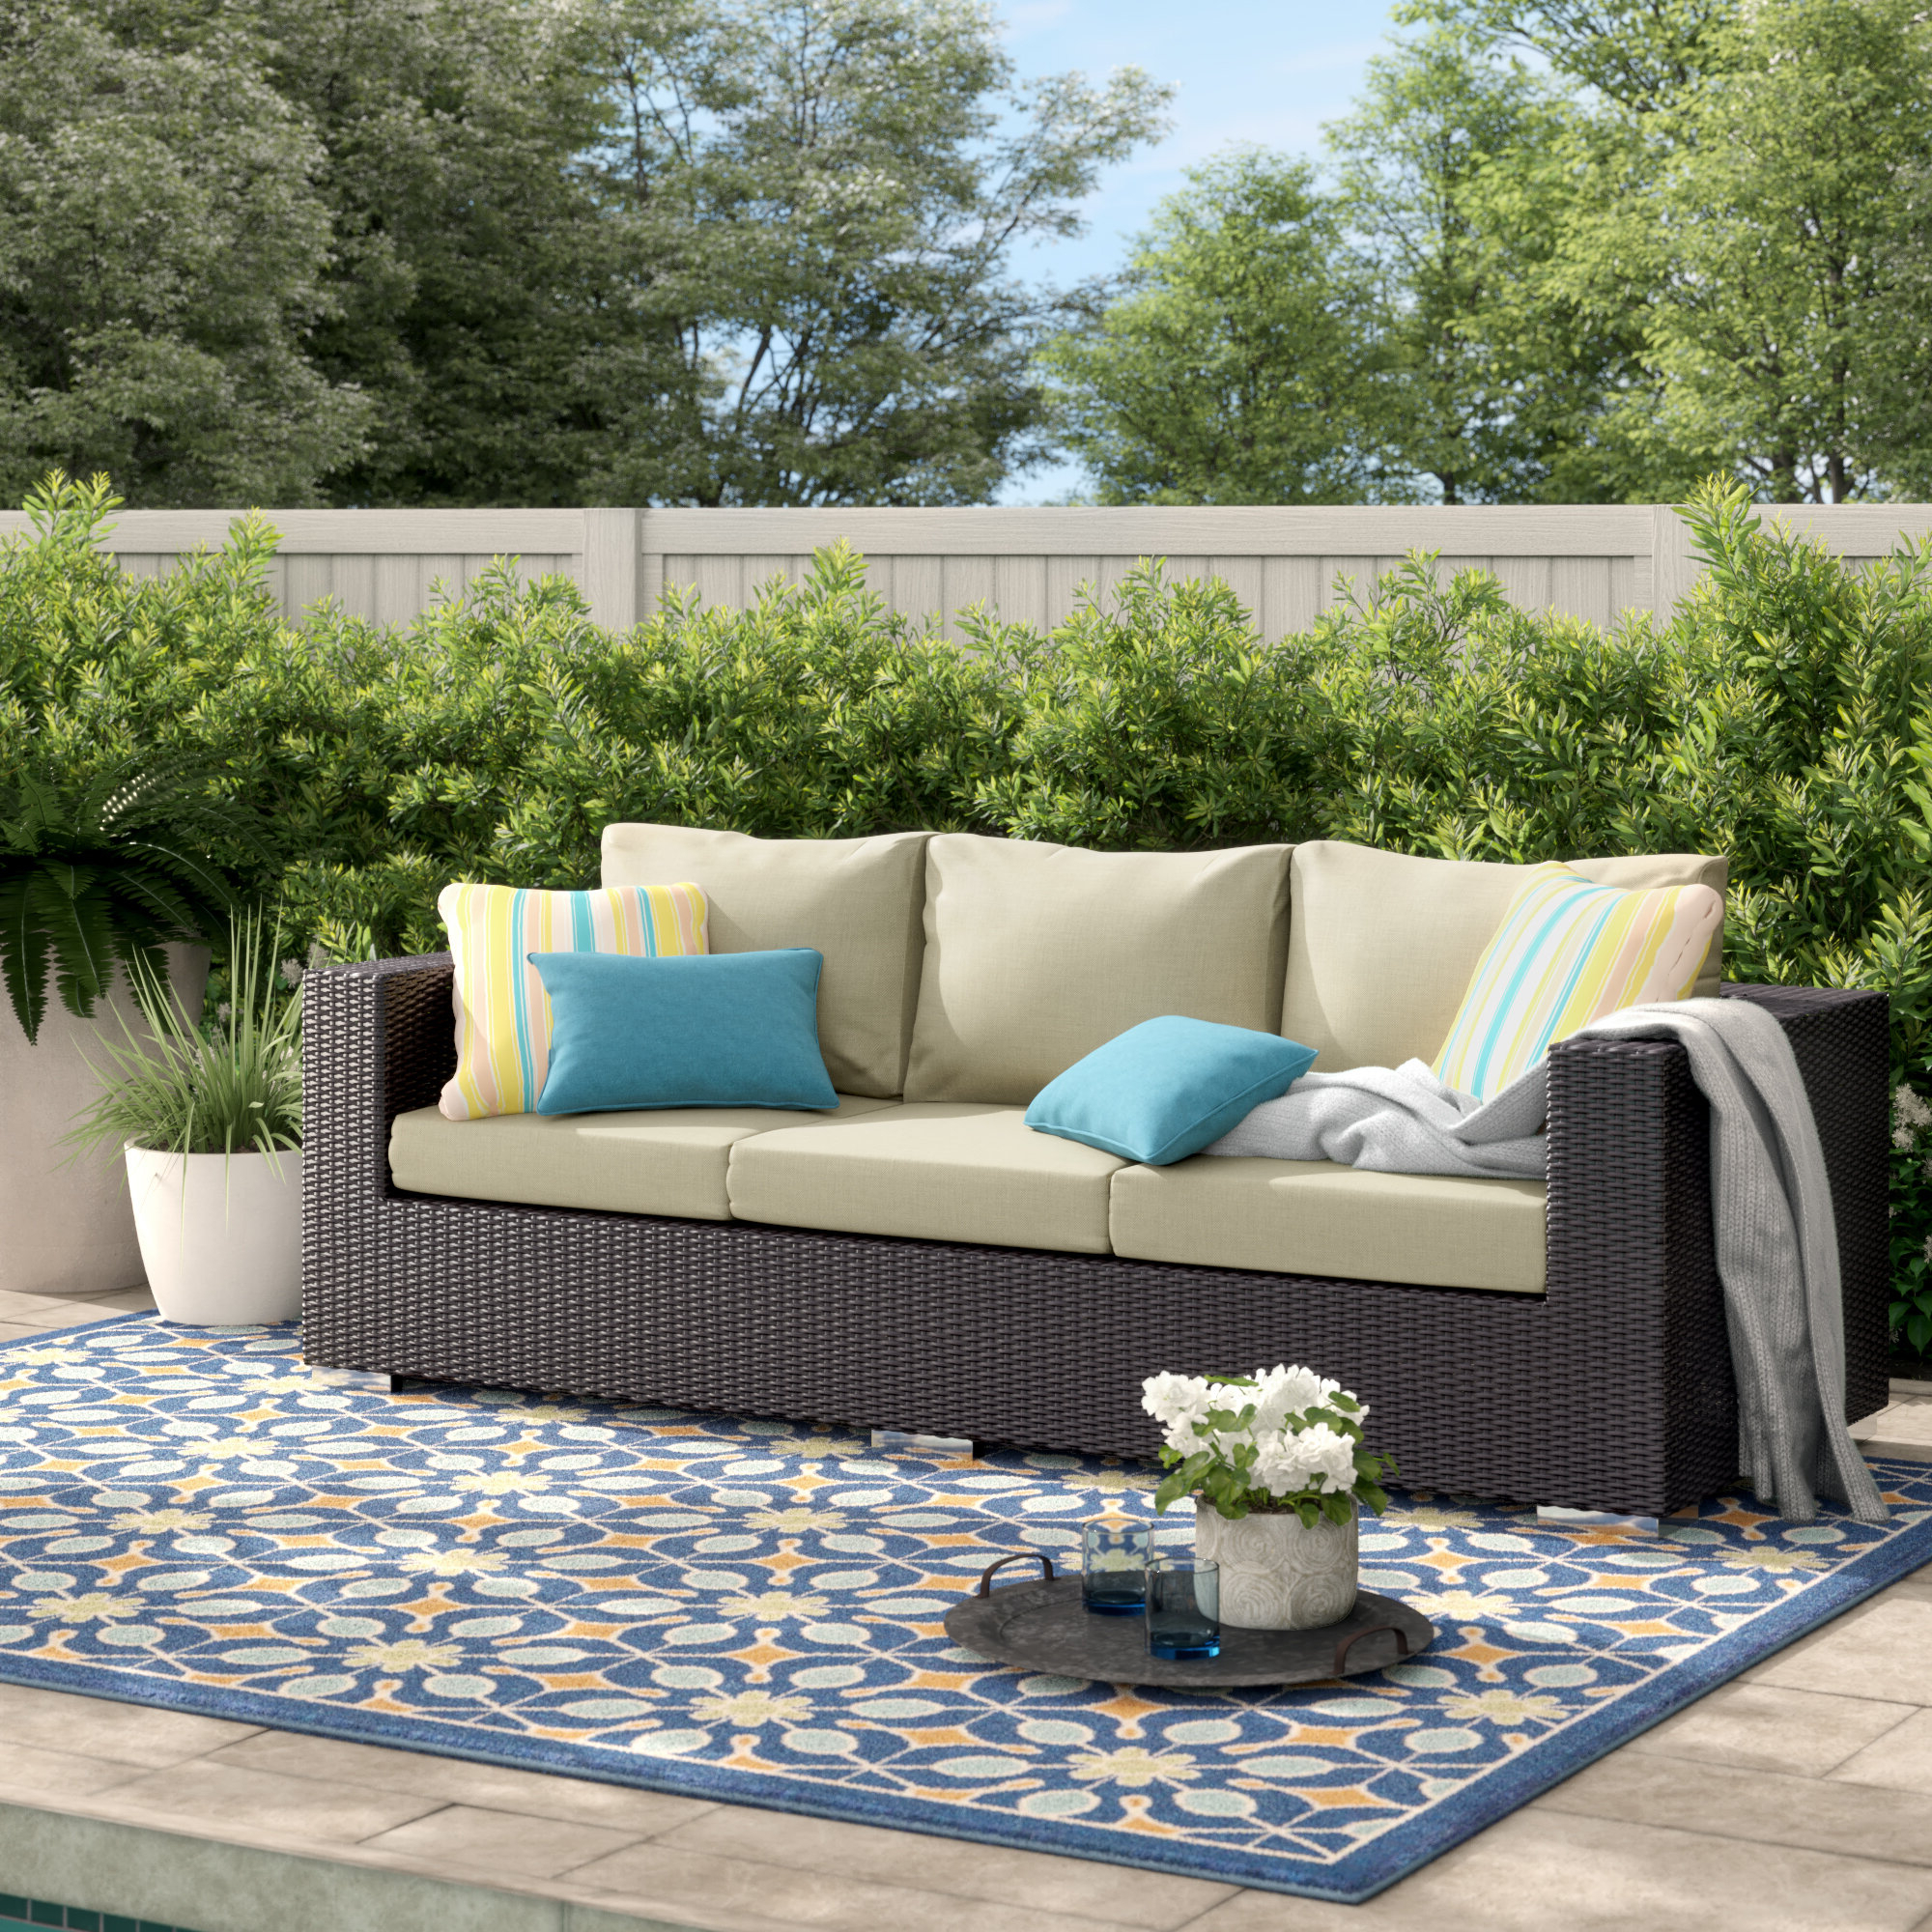 Brentwood Patio Sofa With Cushions Inside Most Recent Wrobel Patio Sectionals With Cushion (View 6 of 20)